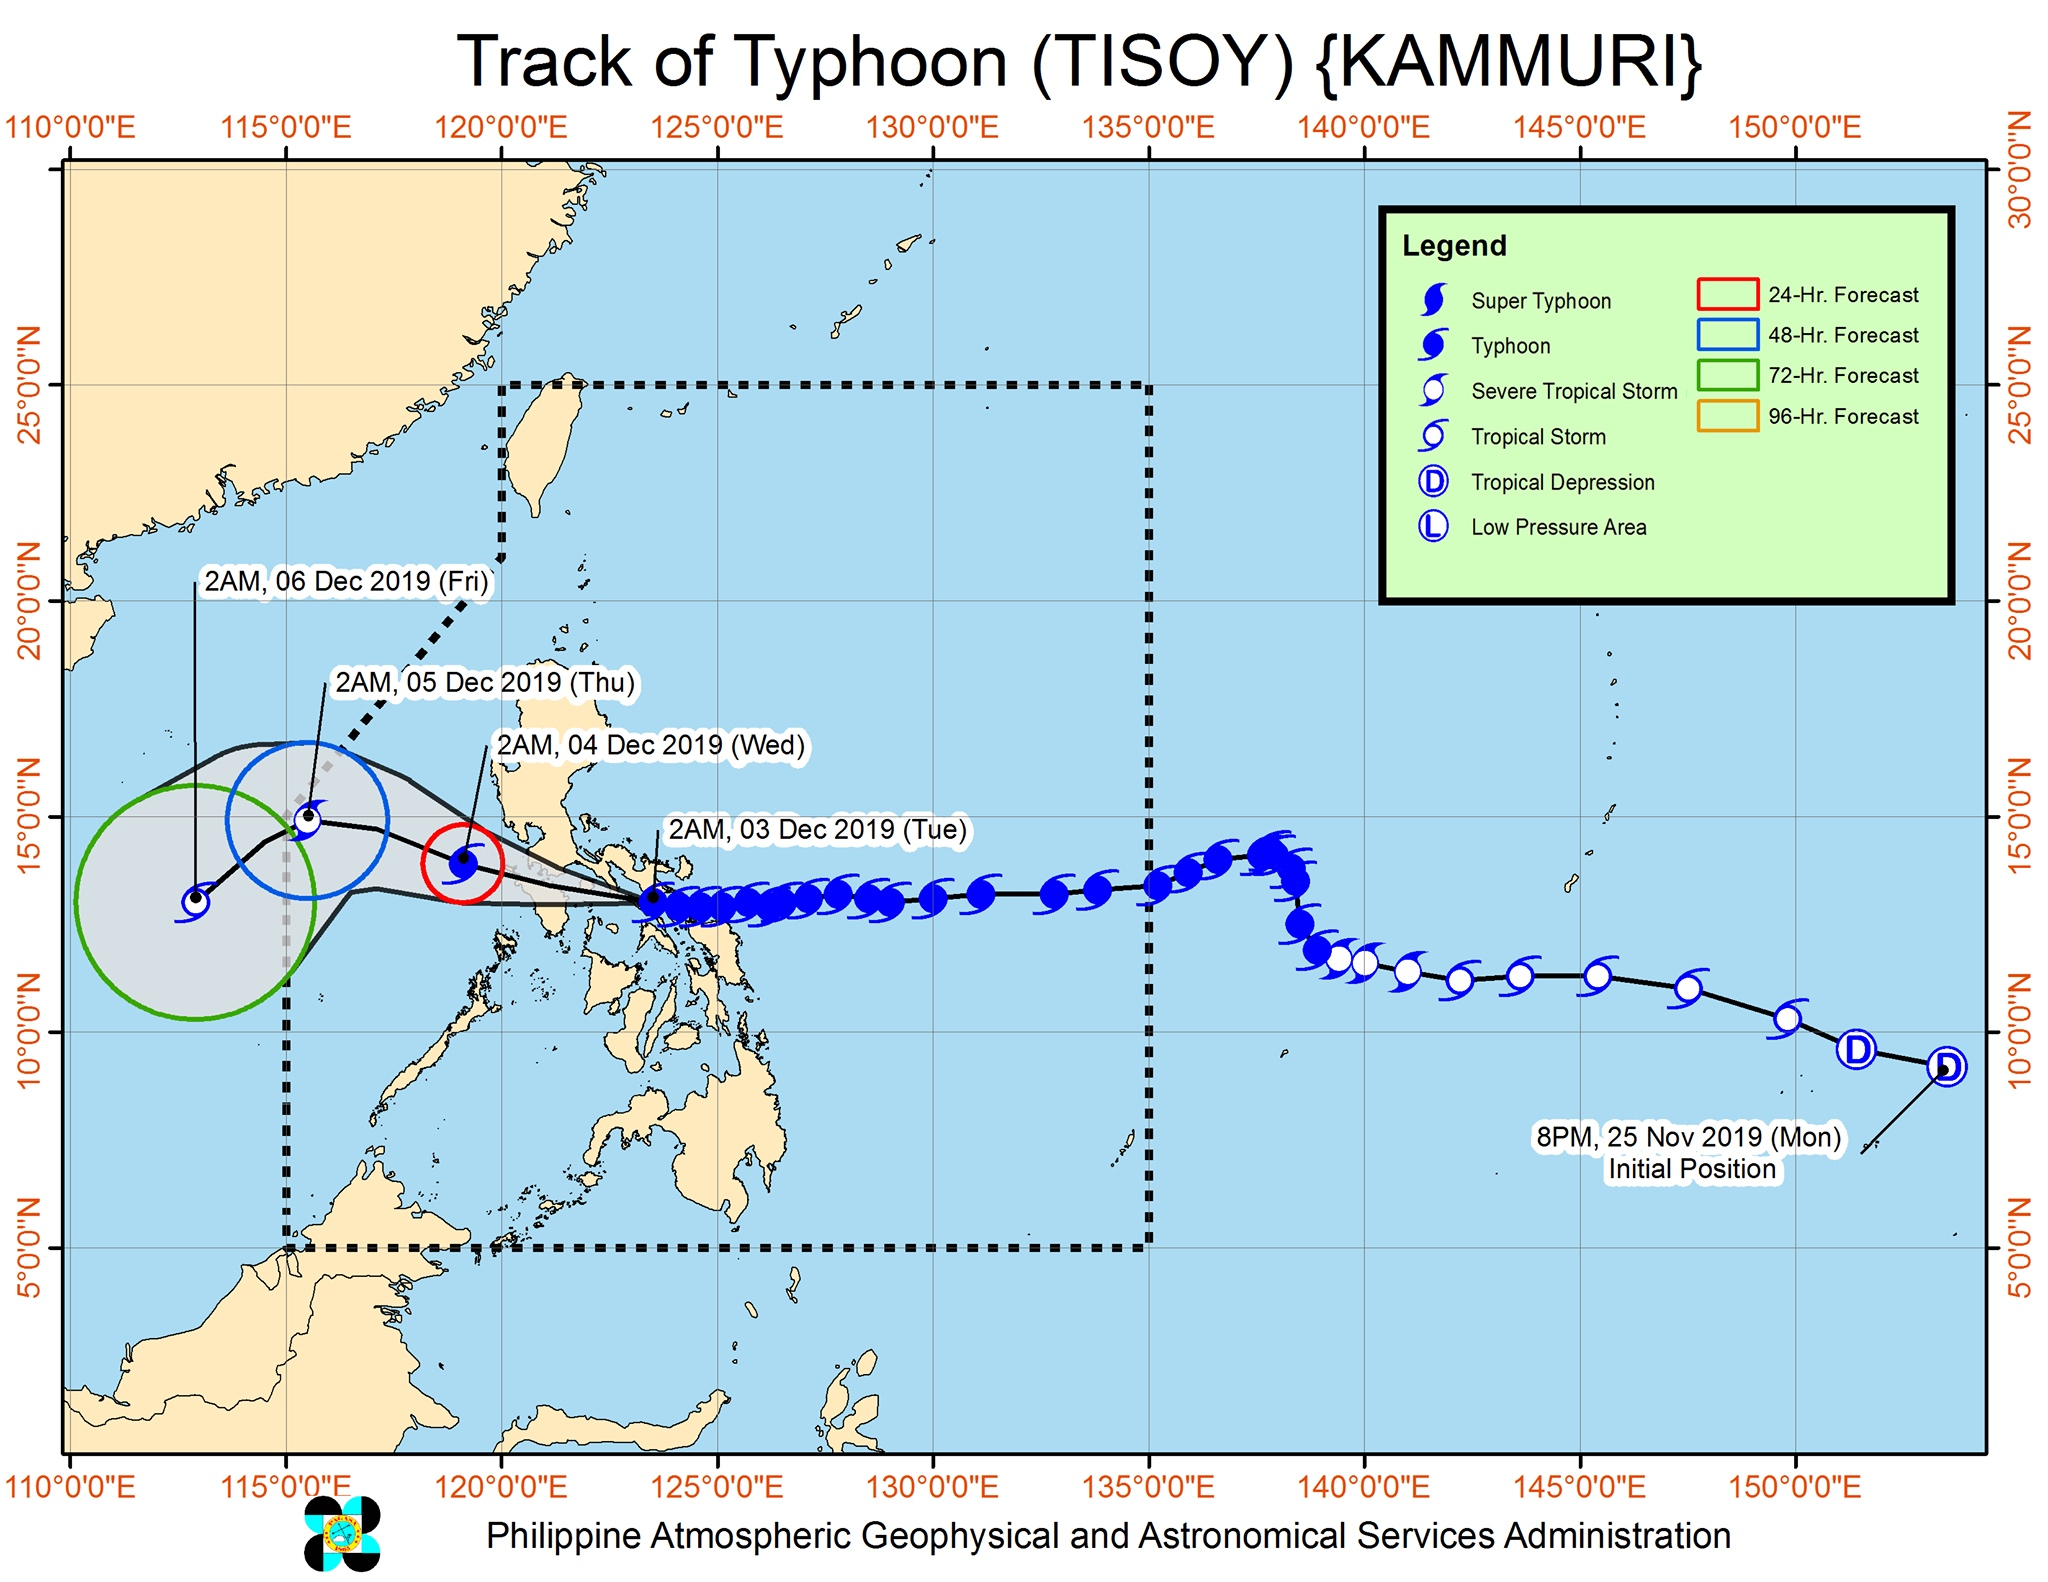 Forecast track of Typhoon Tisoy (Kammuri) as of December 3, 2019, 5 am. Image from PAGASA